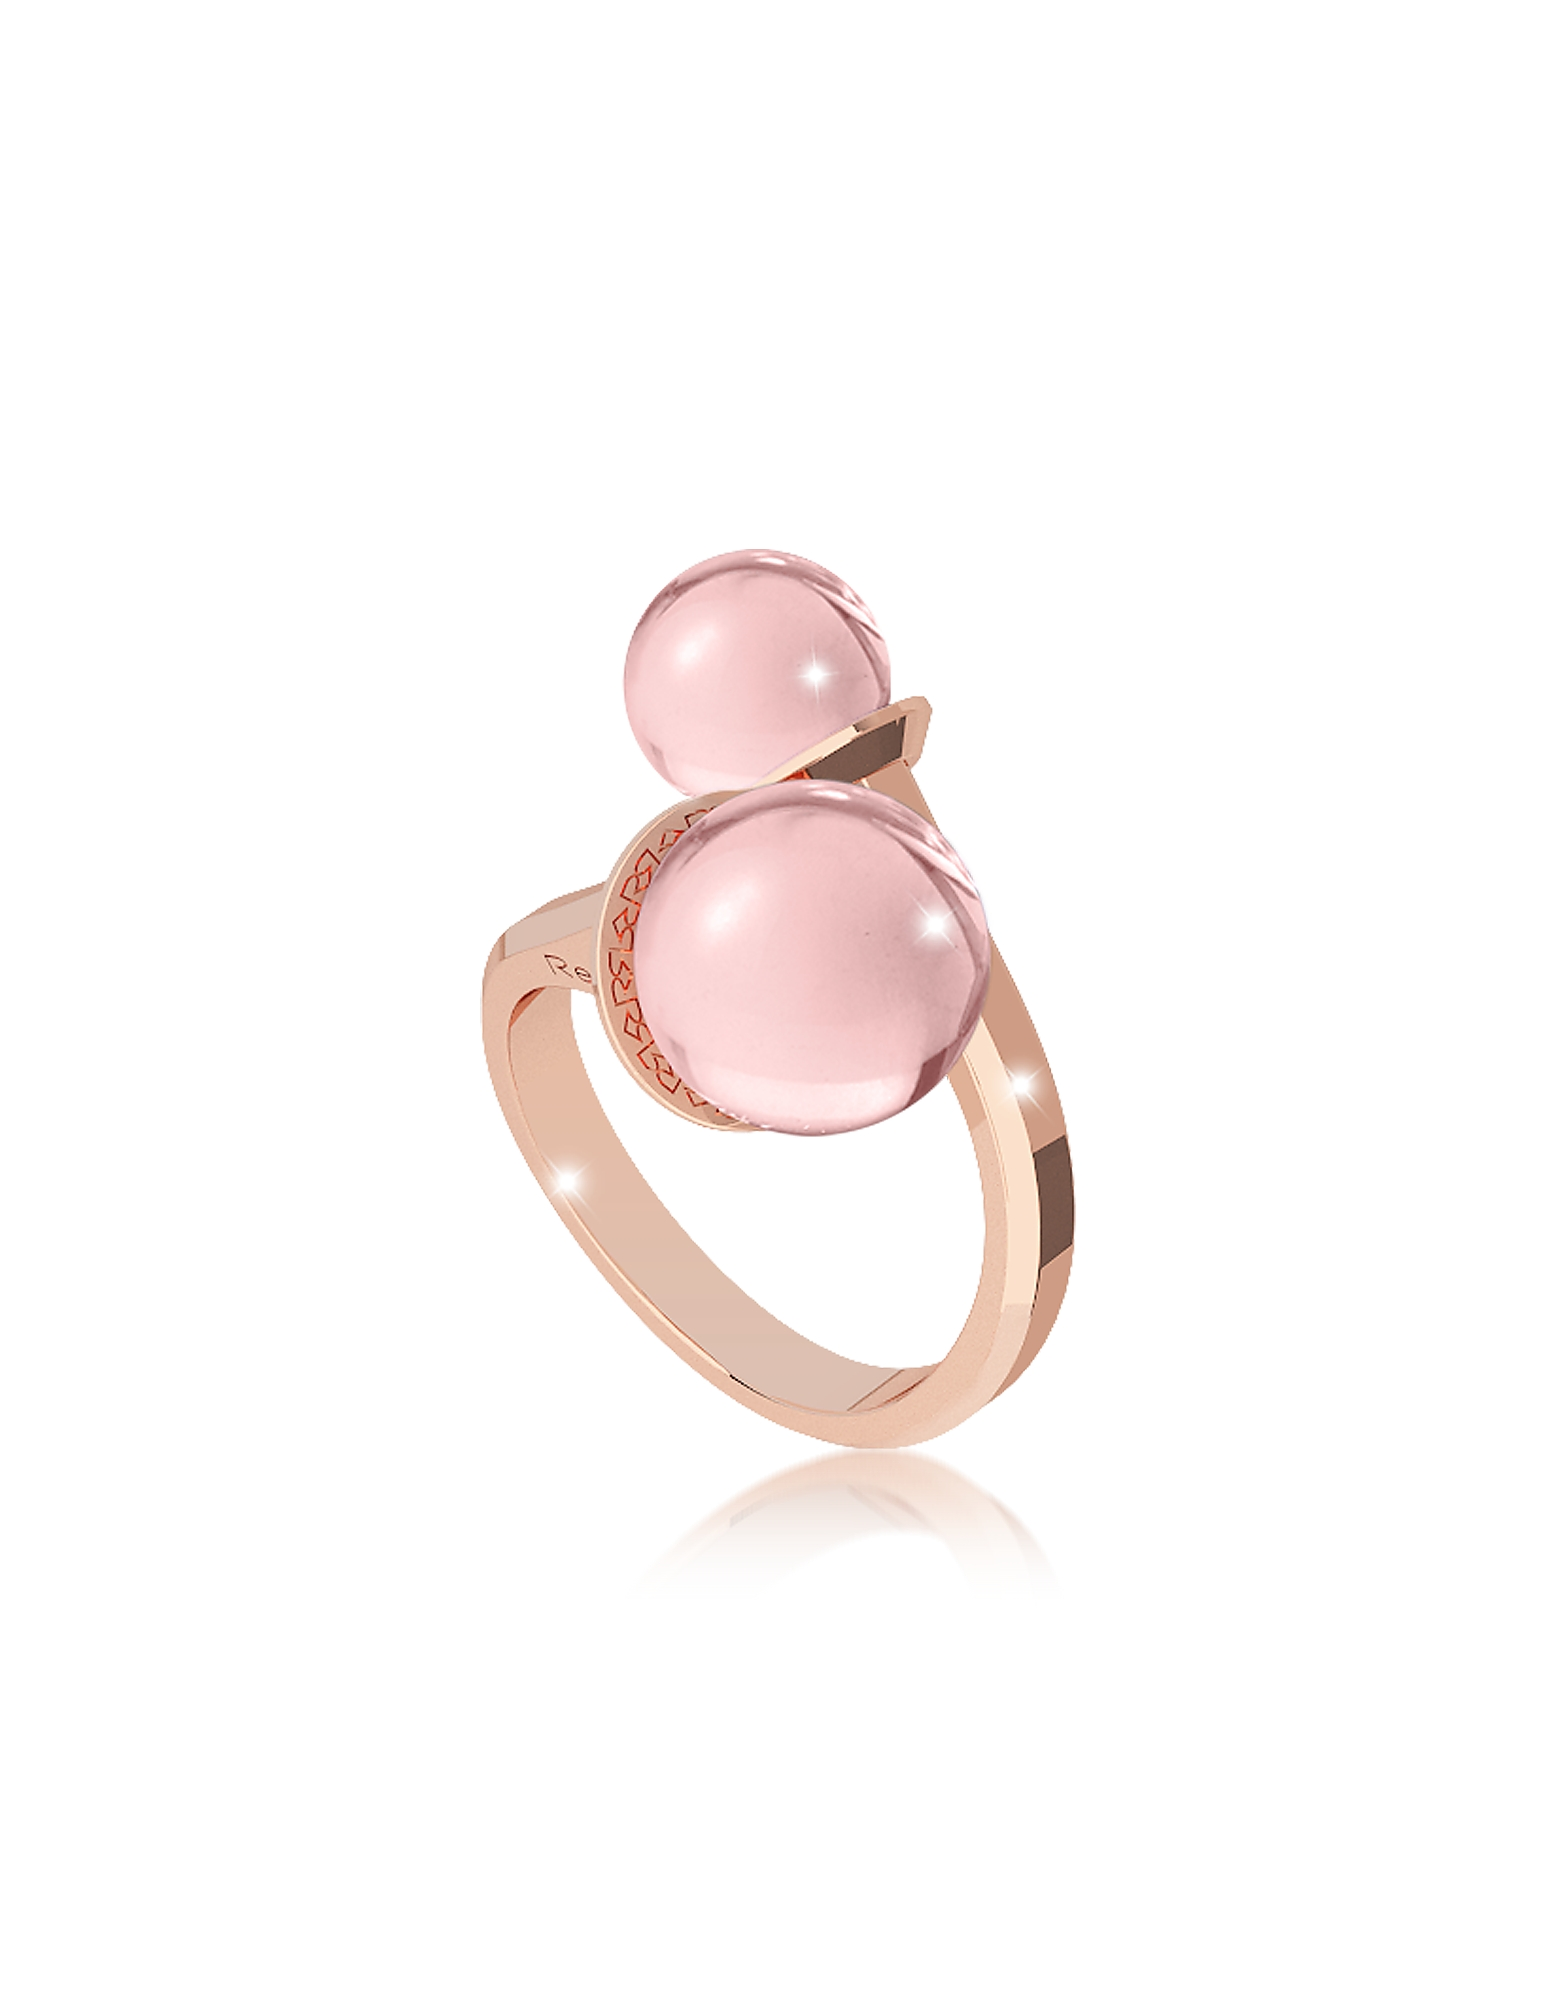 Boulevard Stone Rose Gold Over Bronze Contrarié Ring w/Hydrothermal Pink Stones